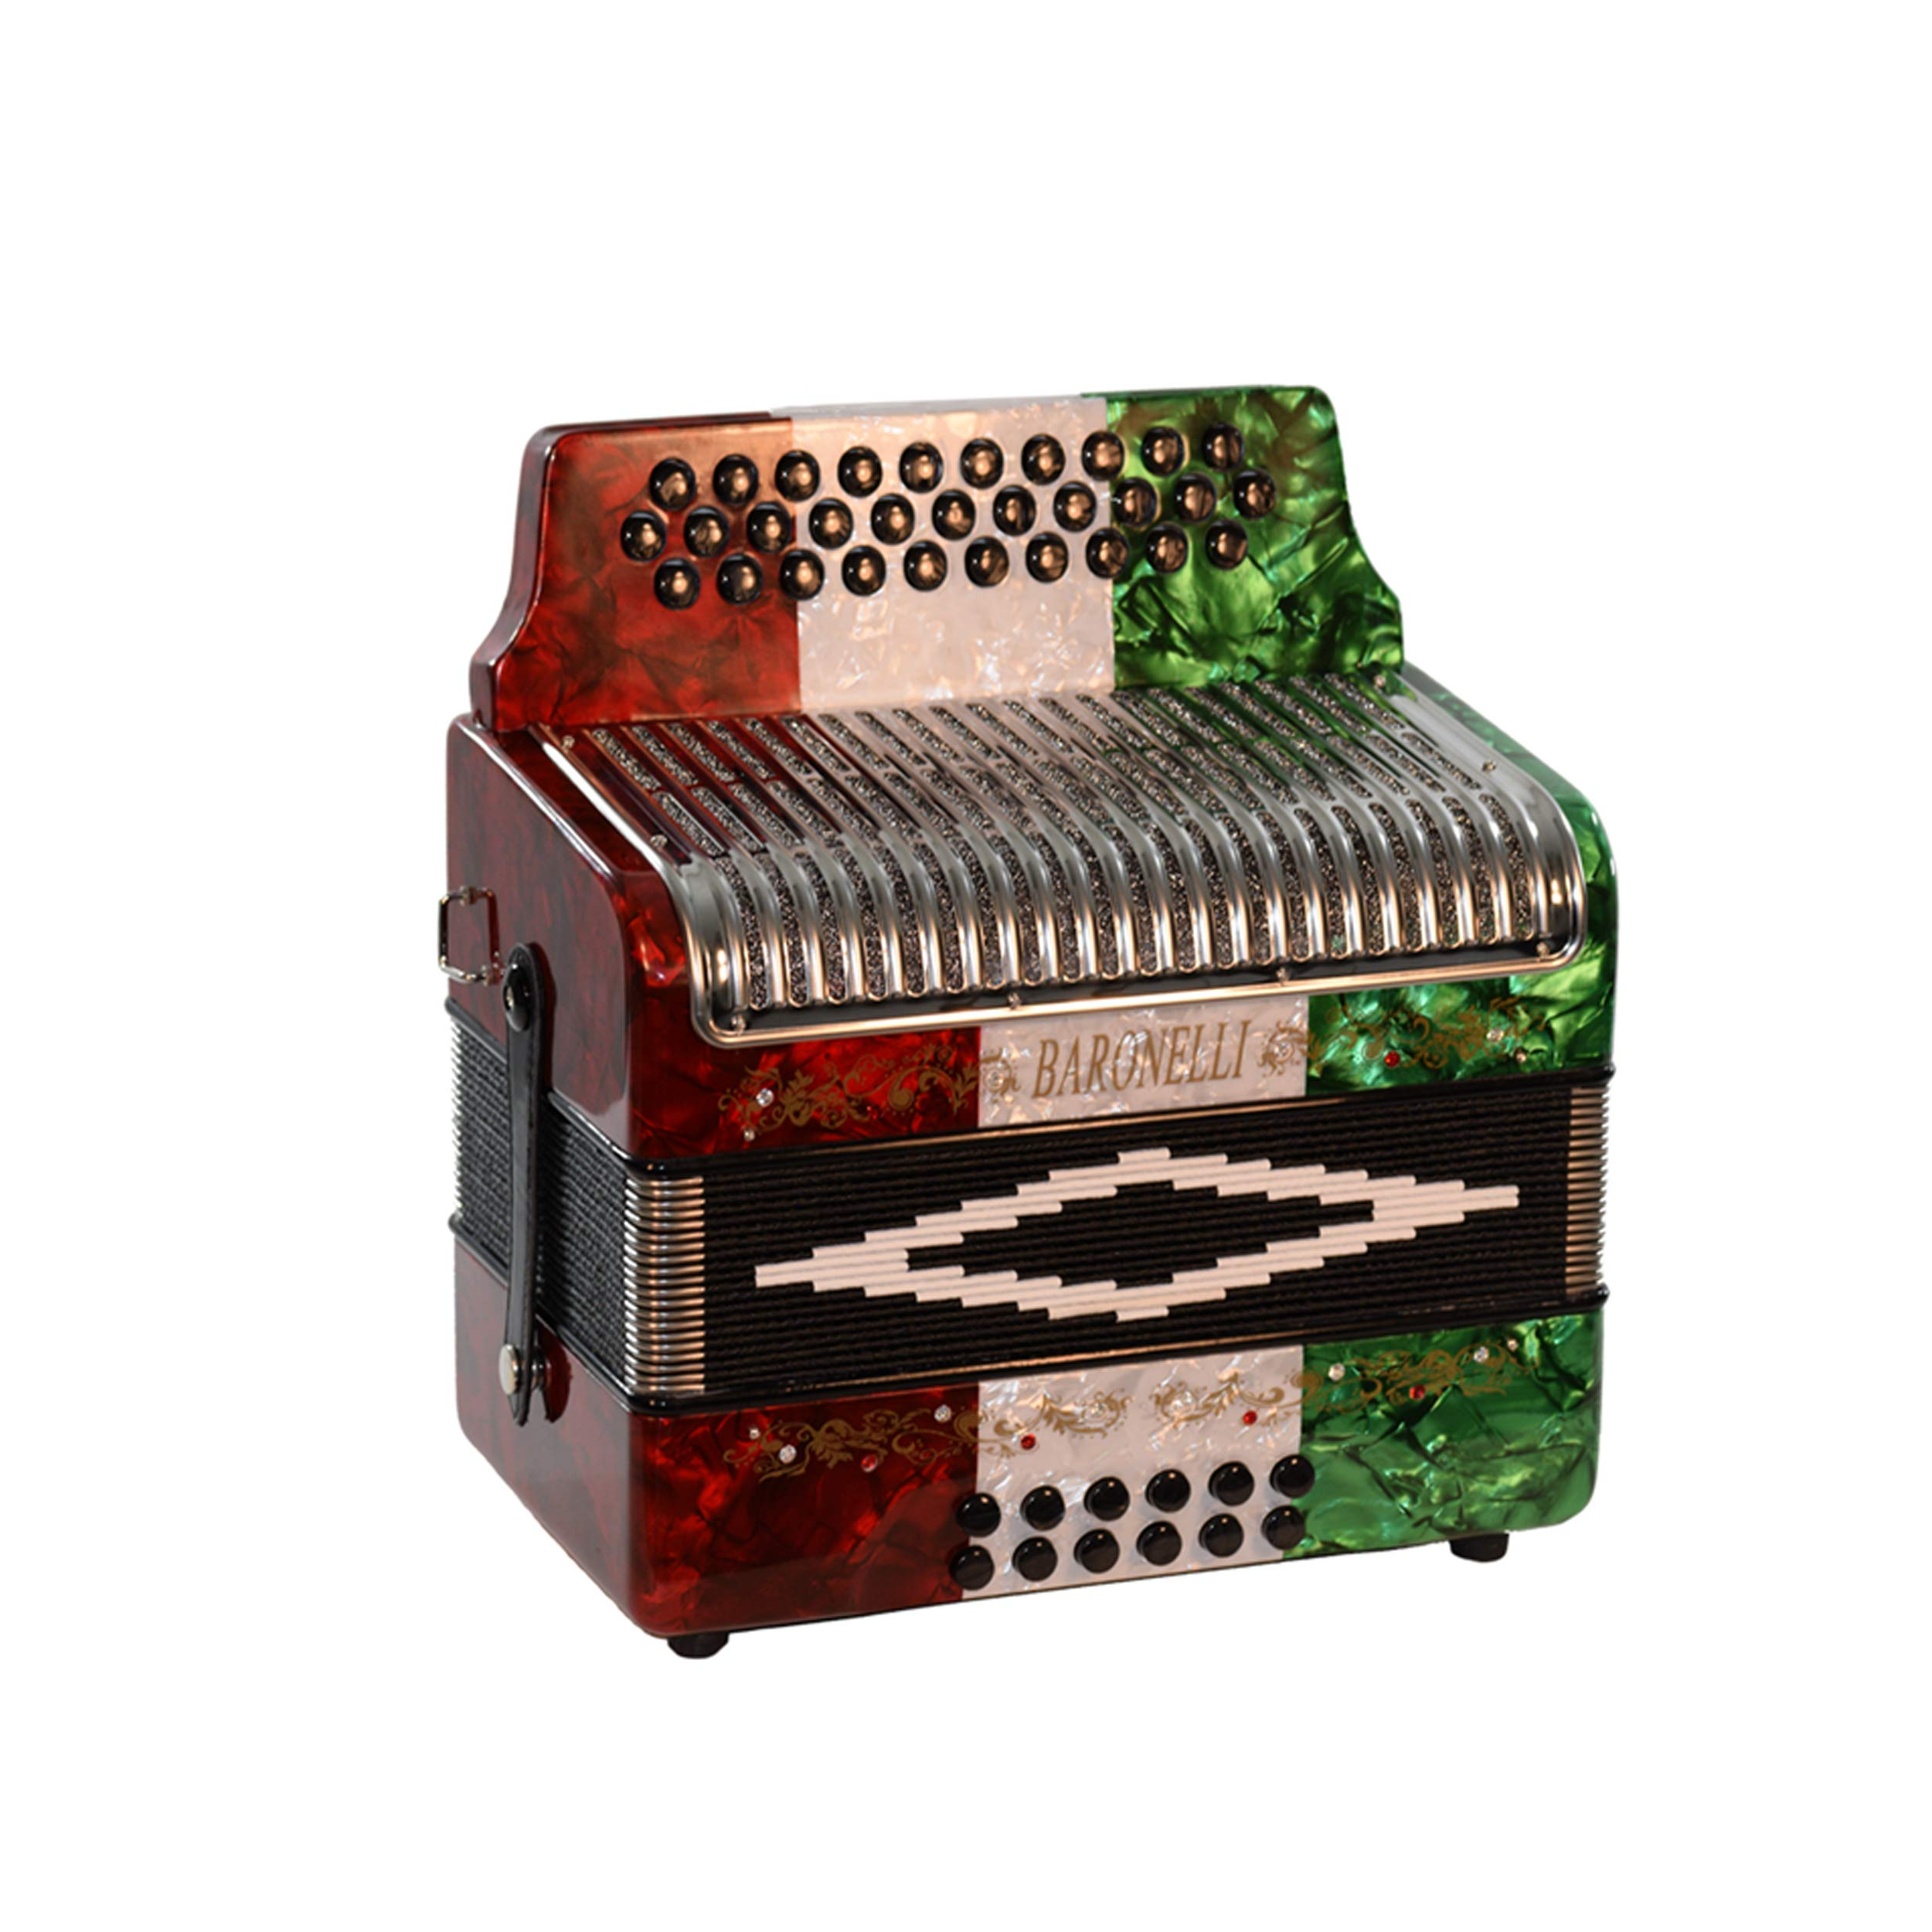 Baronelli 31 Button 12 Bass Accordion GCF Stainless Steel Grill, Red/White/Green by Baronelli